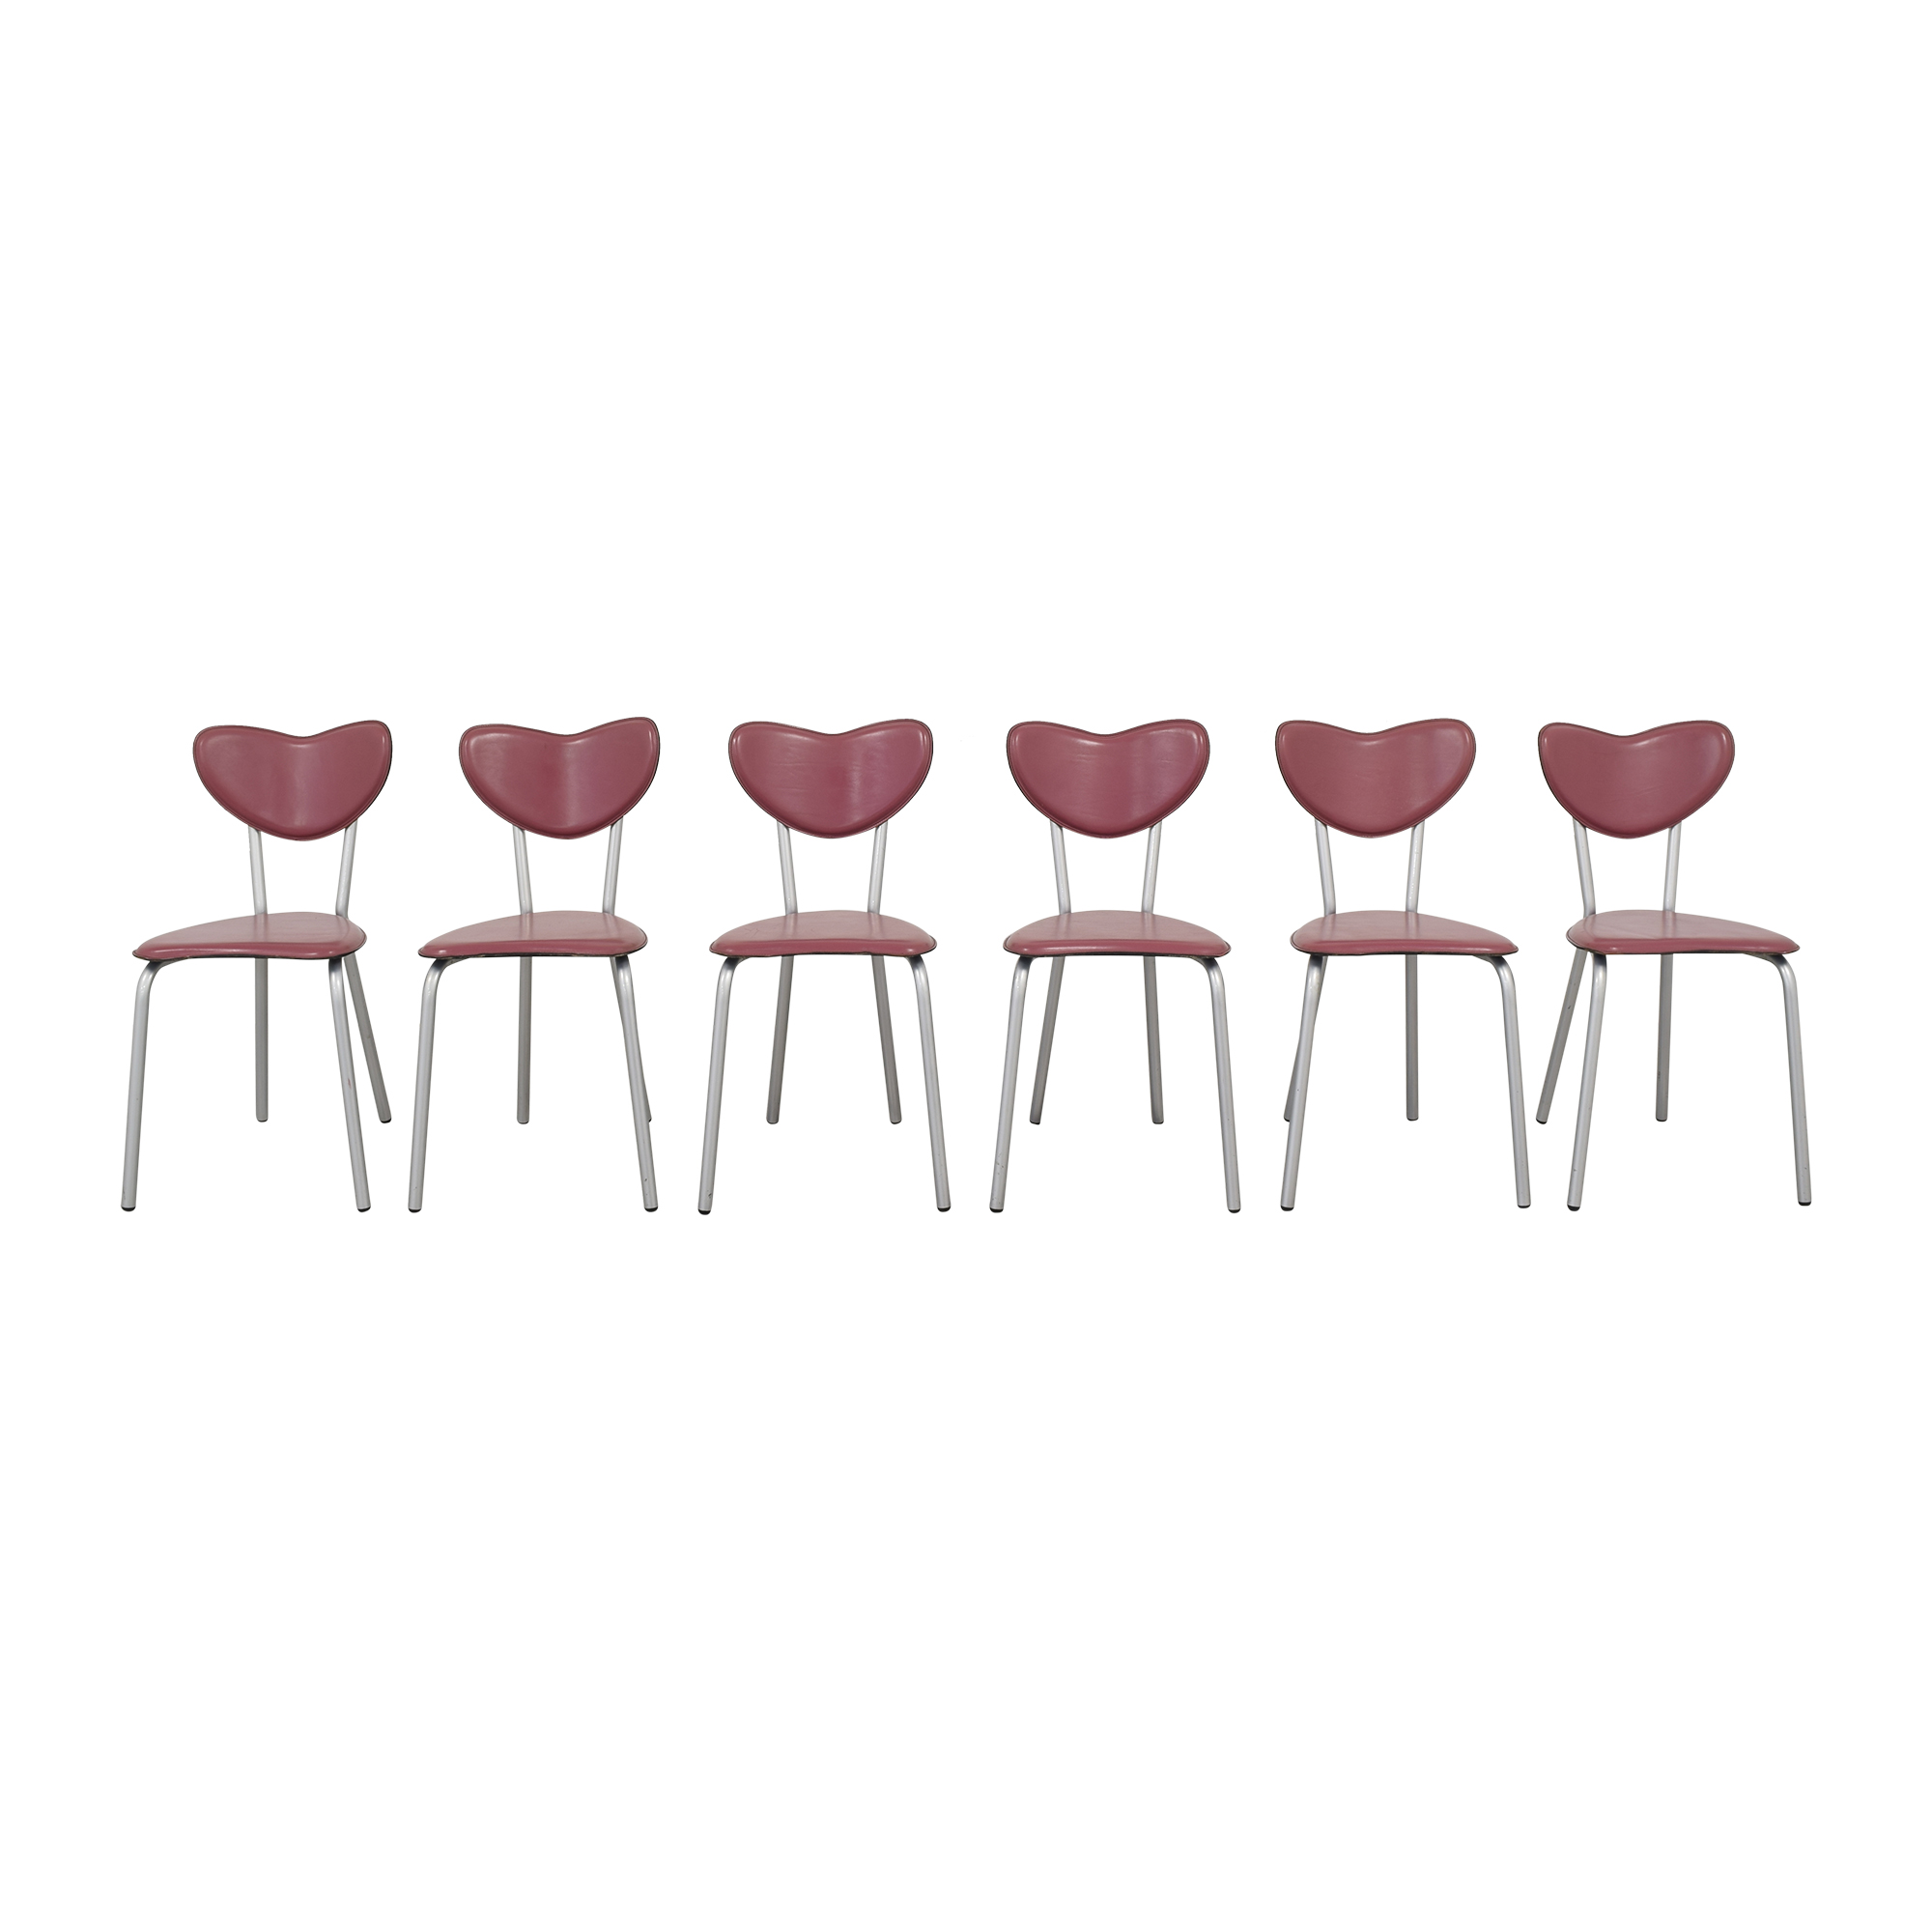 Pellizzoni Pellizzoni Modern Dining Chairs for sale